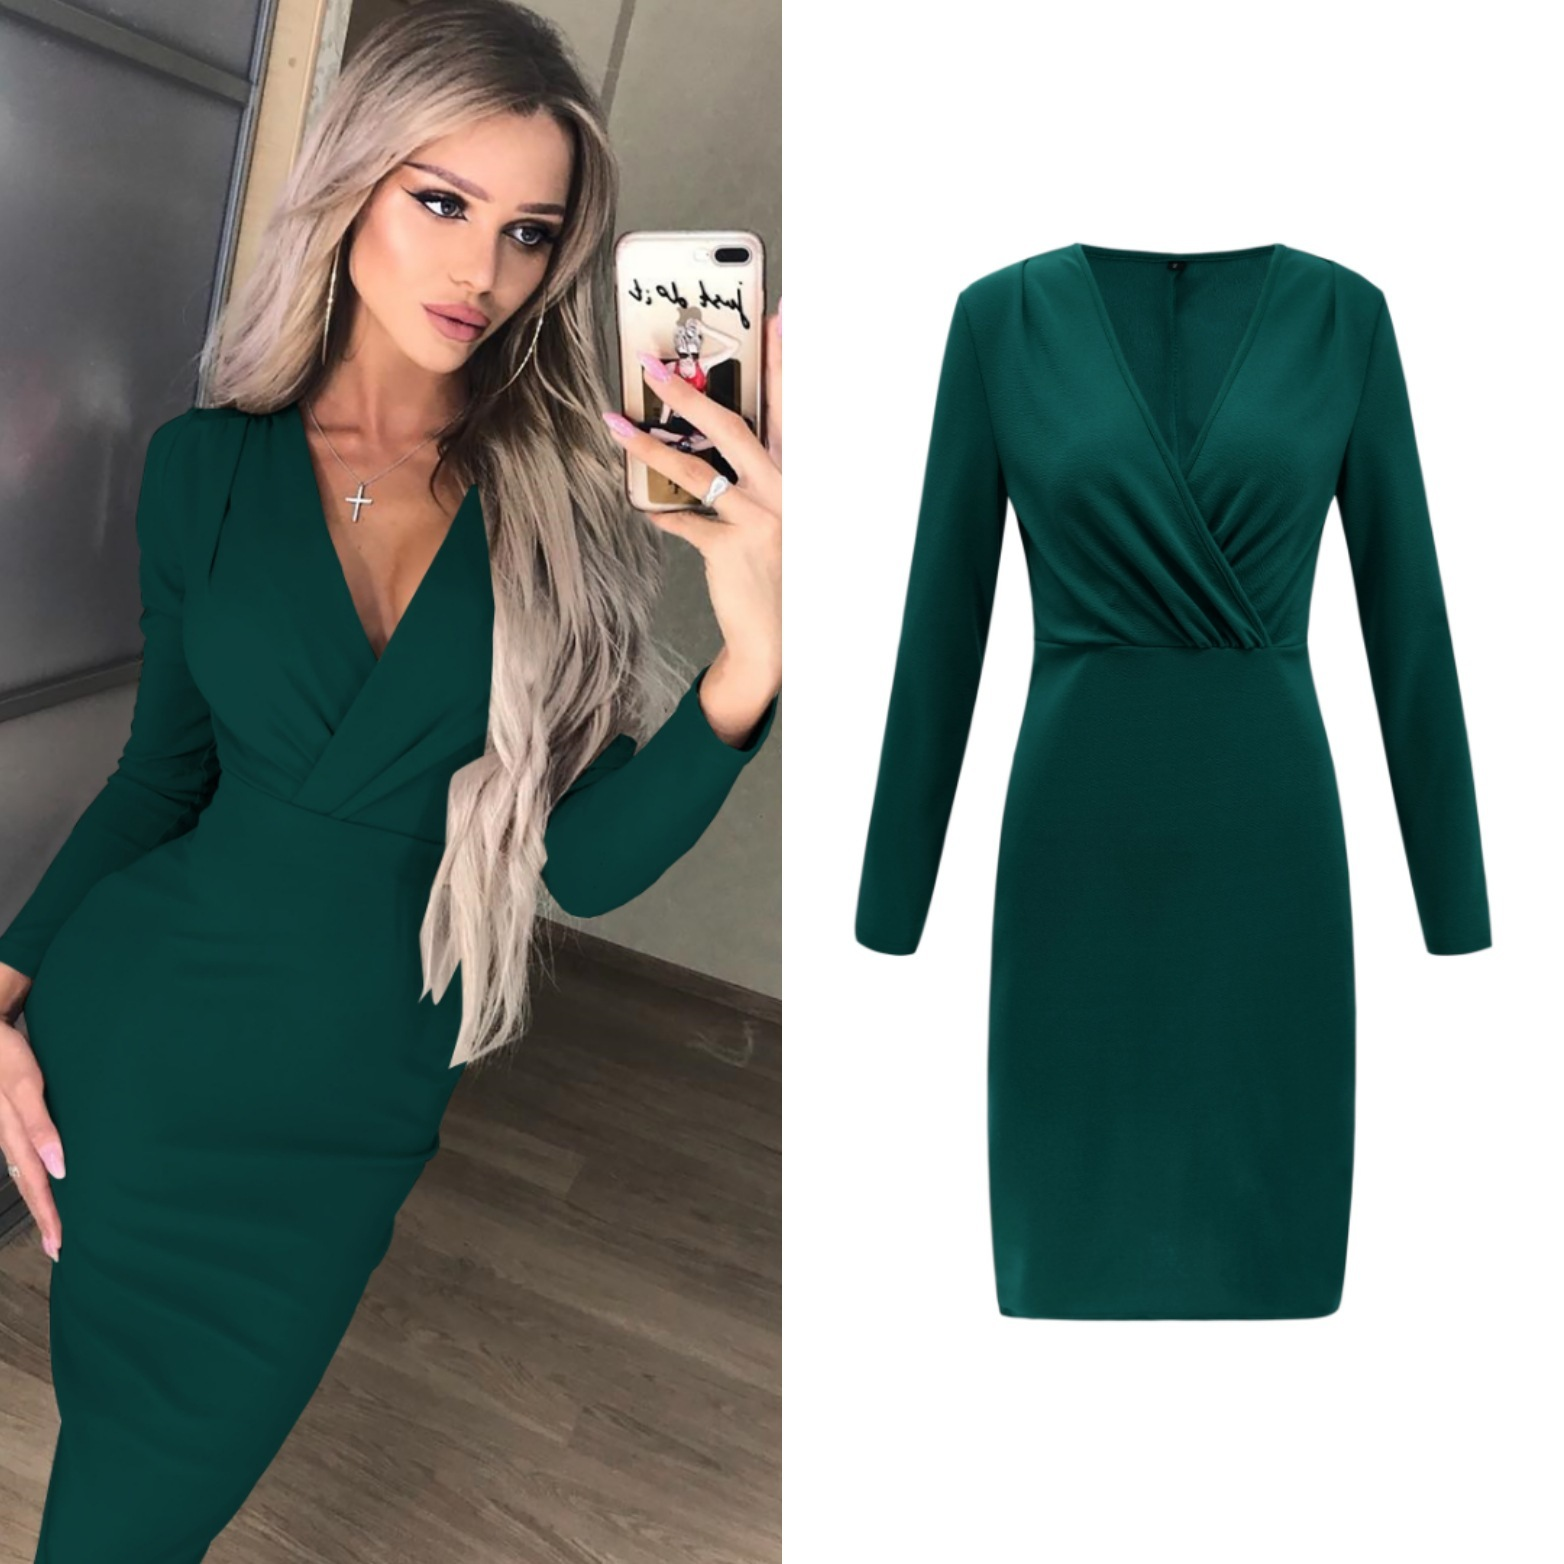 VITIANA Women Work Office Midi Dress Female 2019 Spring Long Sleeve V Neck Elegant Slim Bodycon Party Casual Dresses vestidos